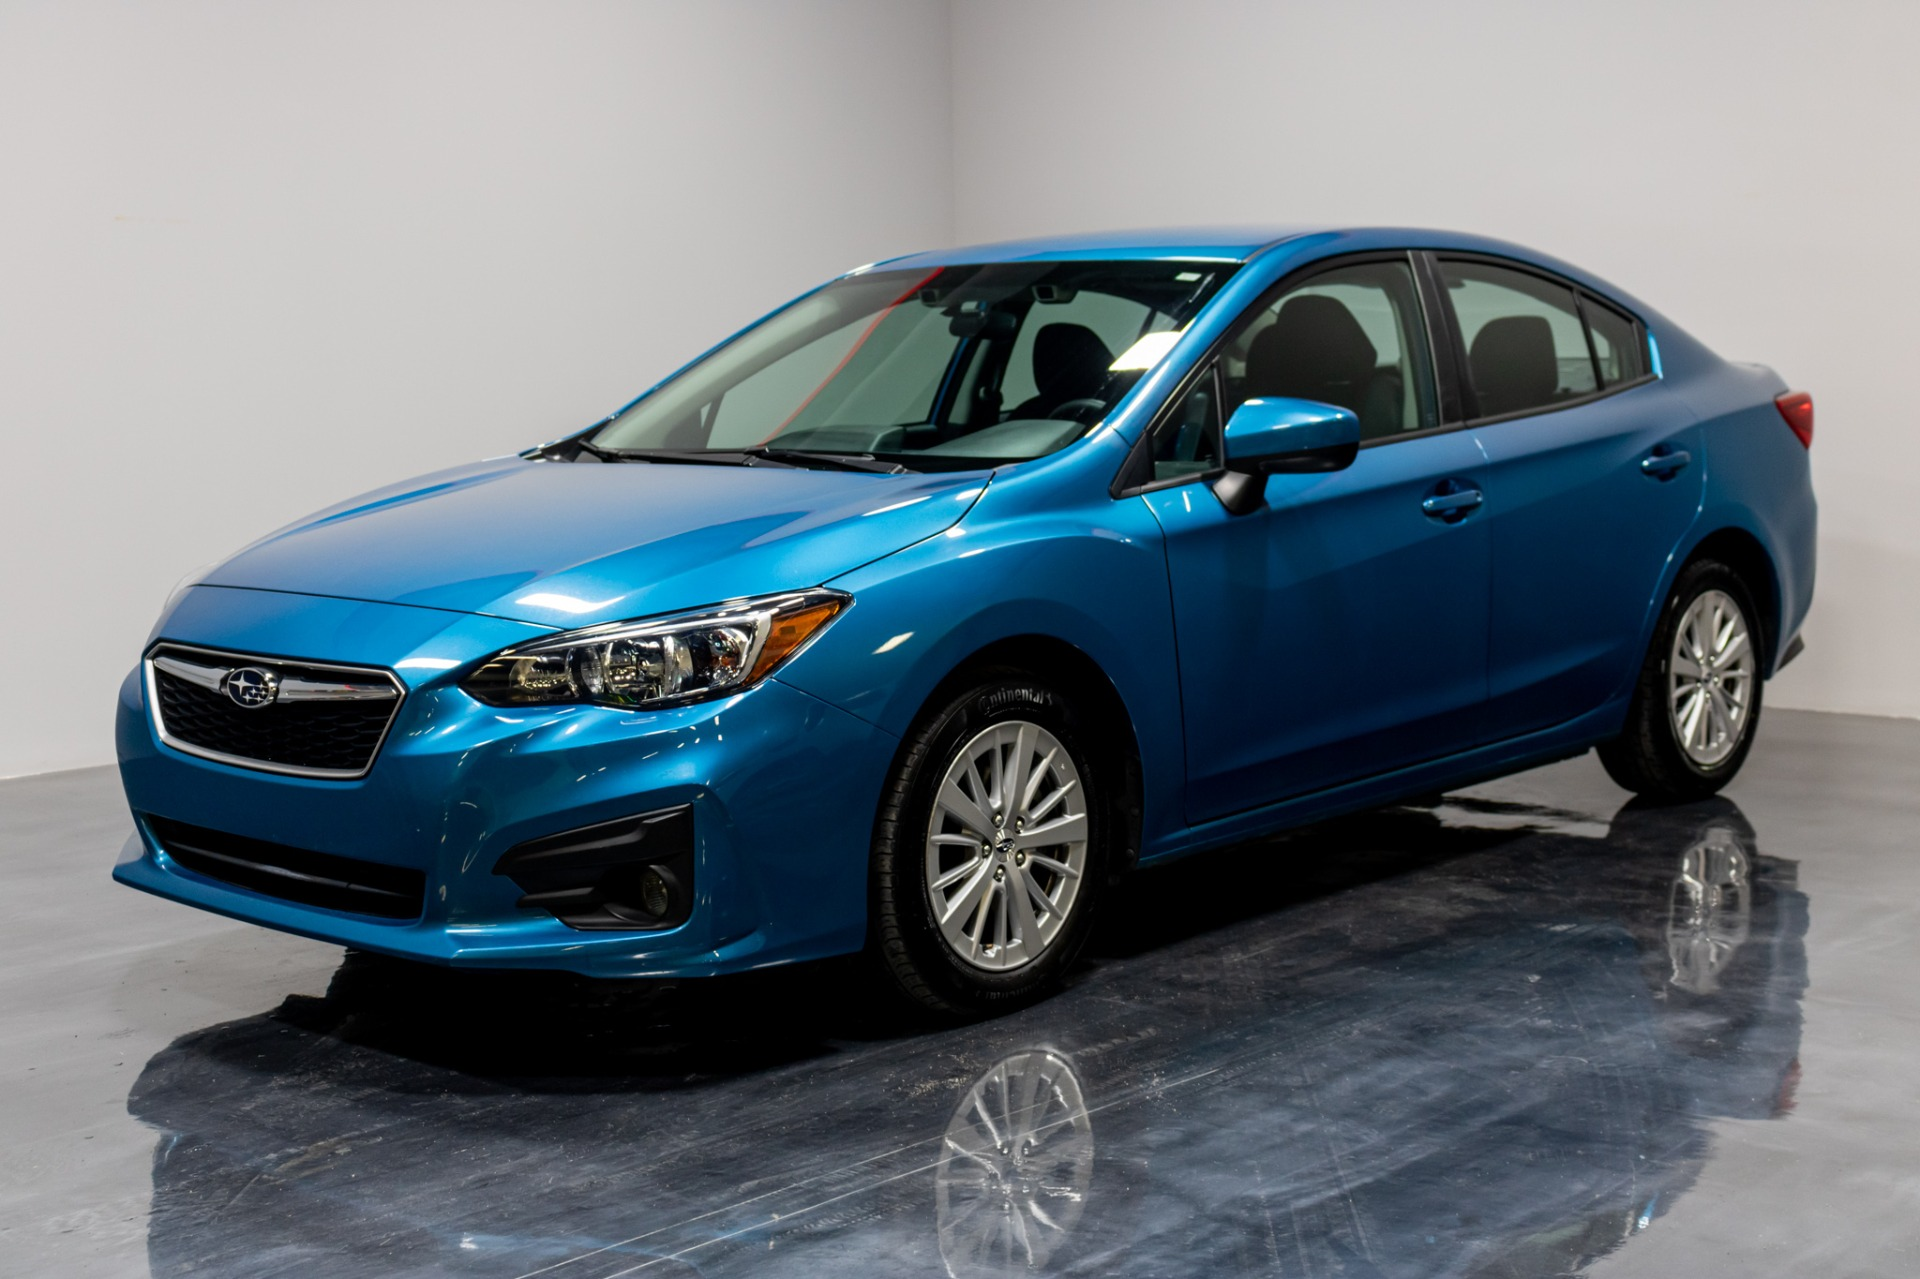 Used 2018 Subaru Impreza Premium for sale Sold at Perfect Auto Collection in Akron OH 44310 1